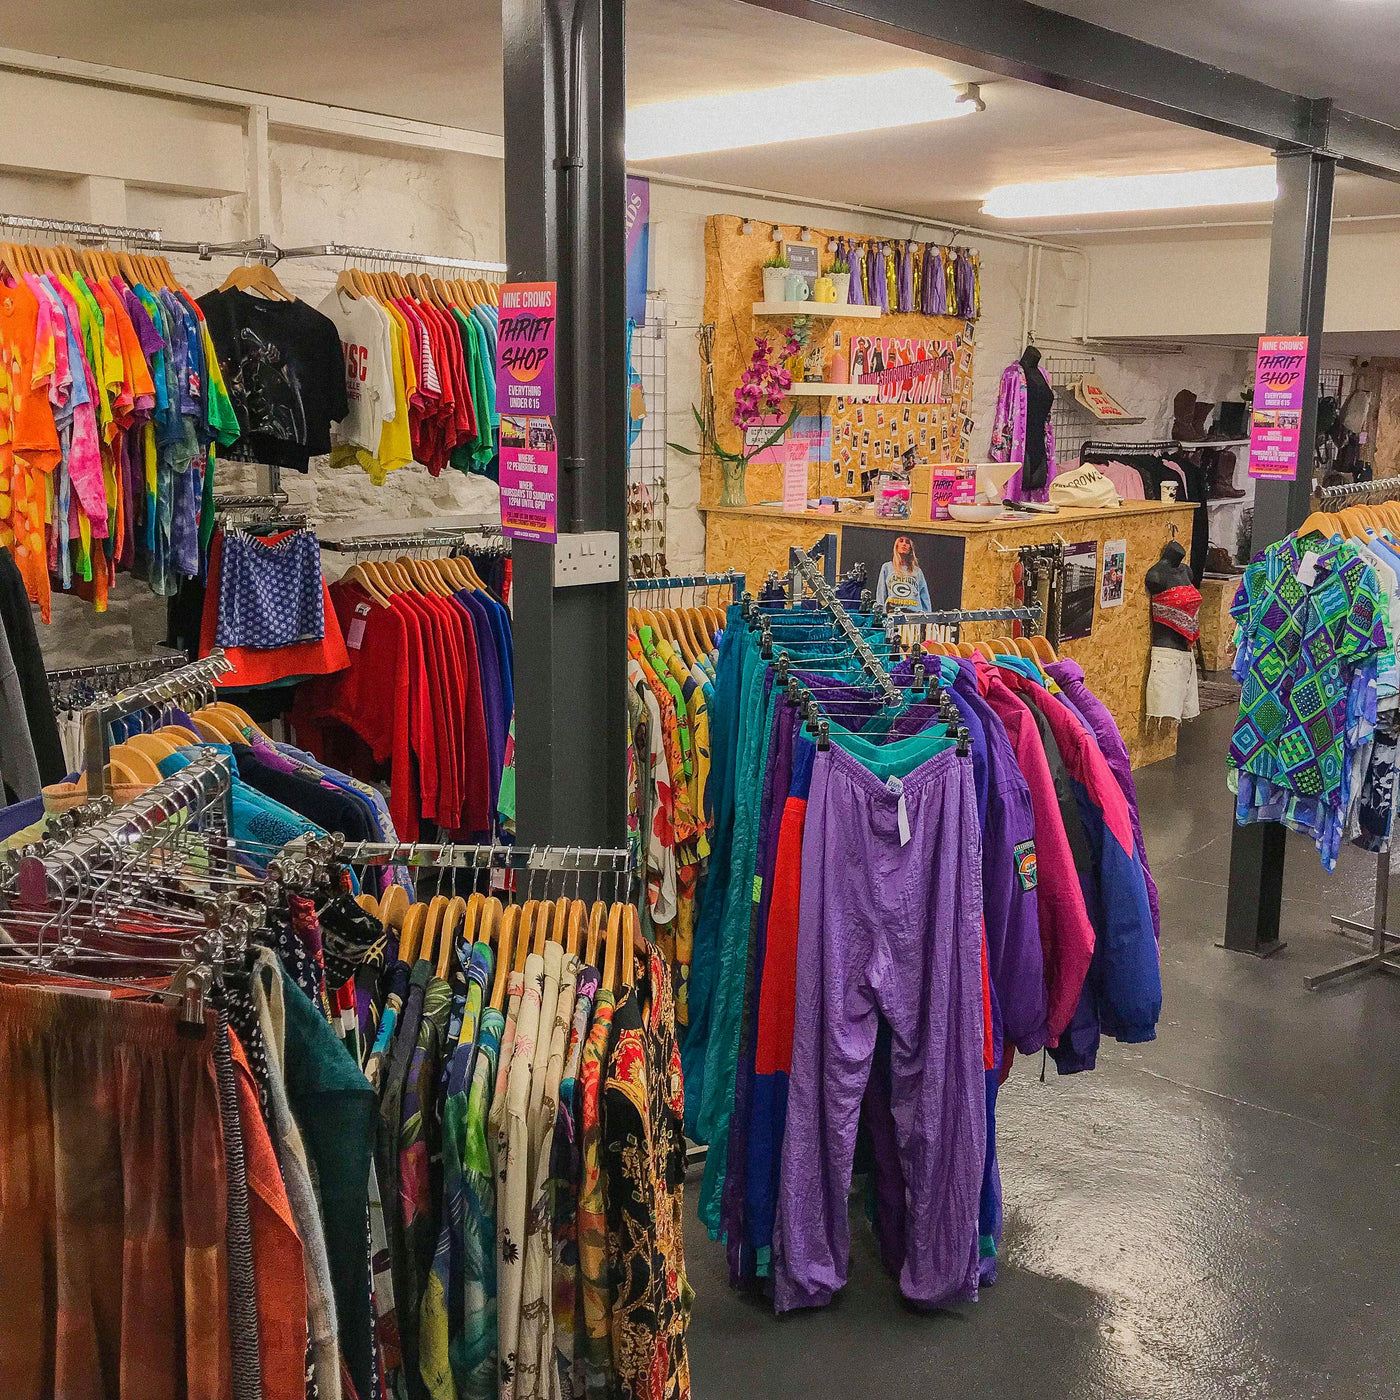 NINE CROWS - HAND PICKED VINTAGE & THRIFT CLOTHING IN DUBLIN. – NINE CROWS VINTAGE